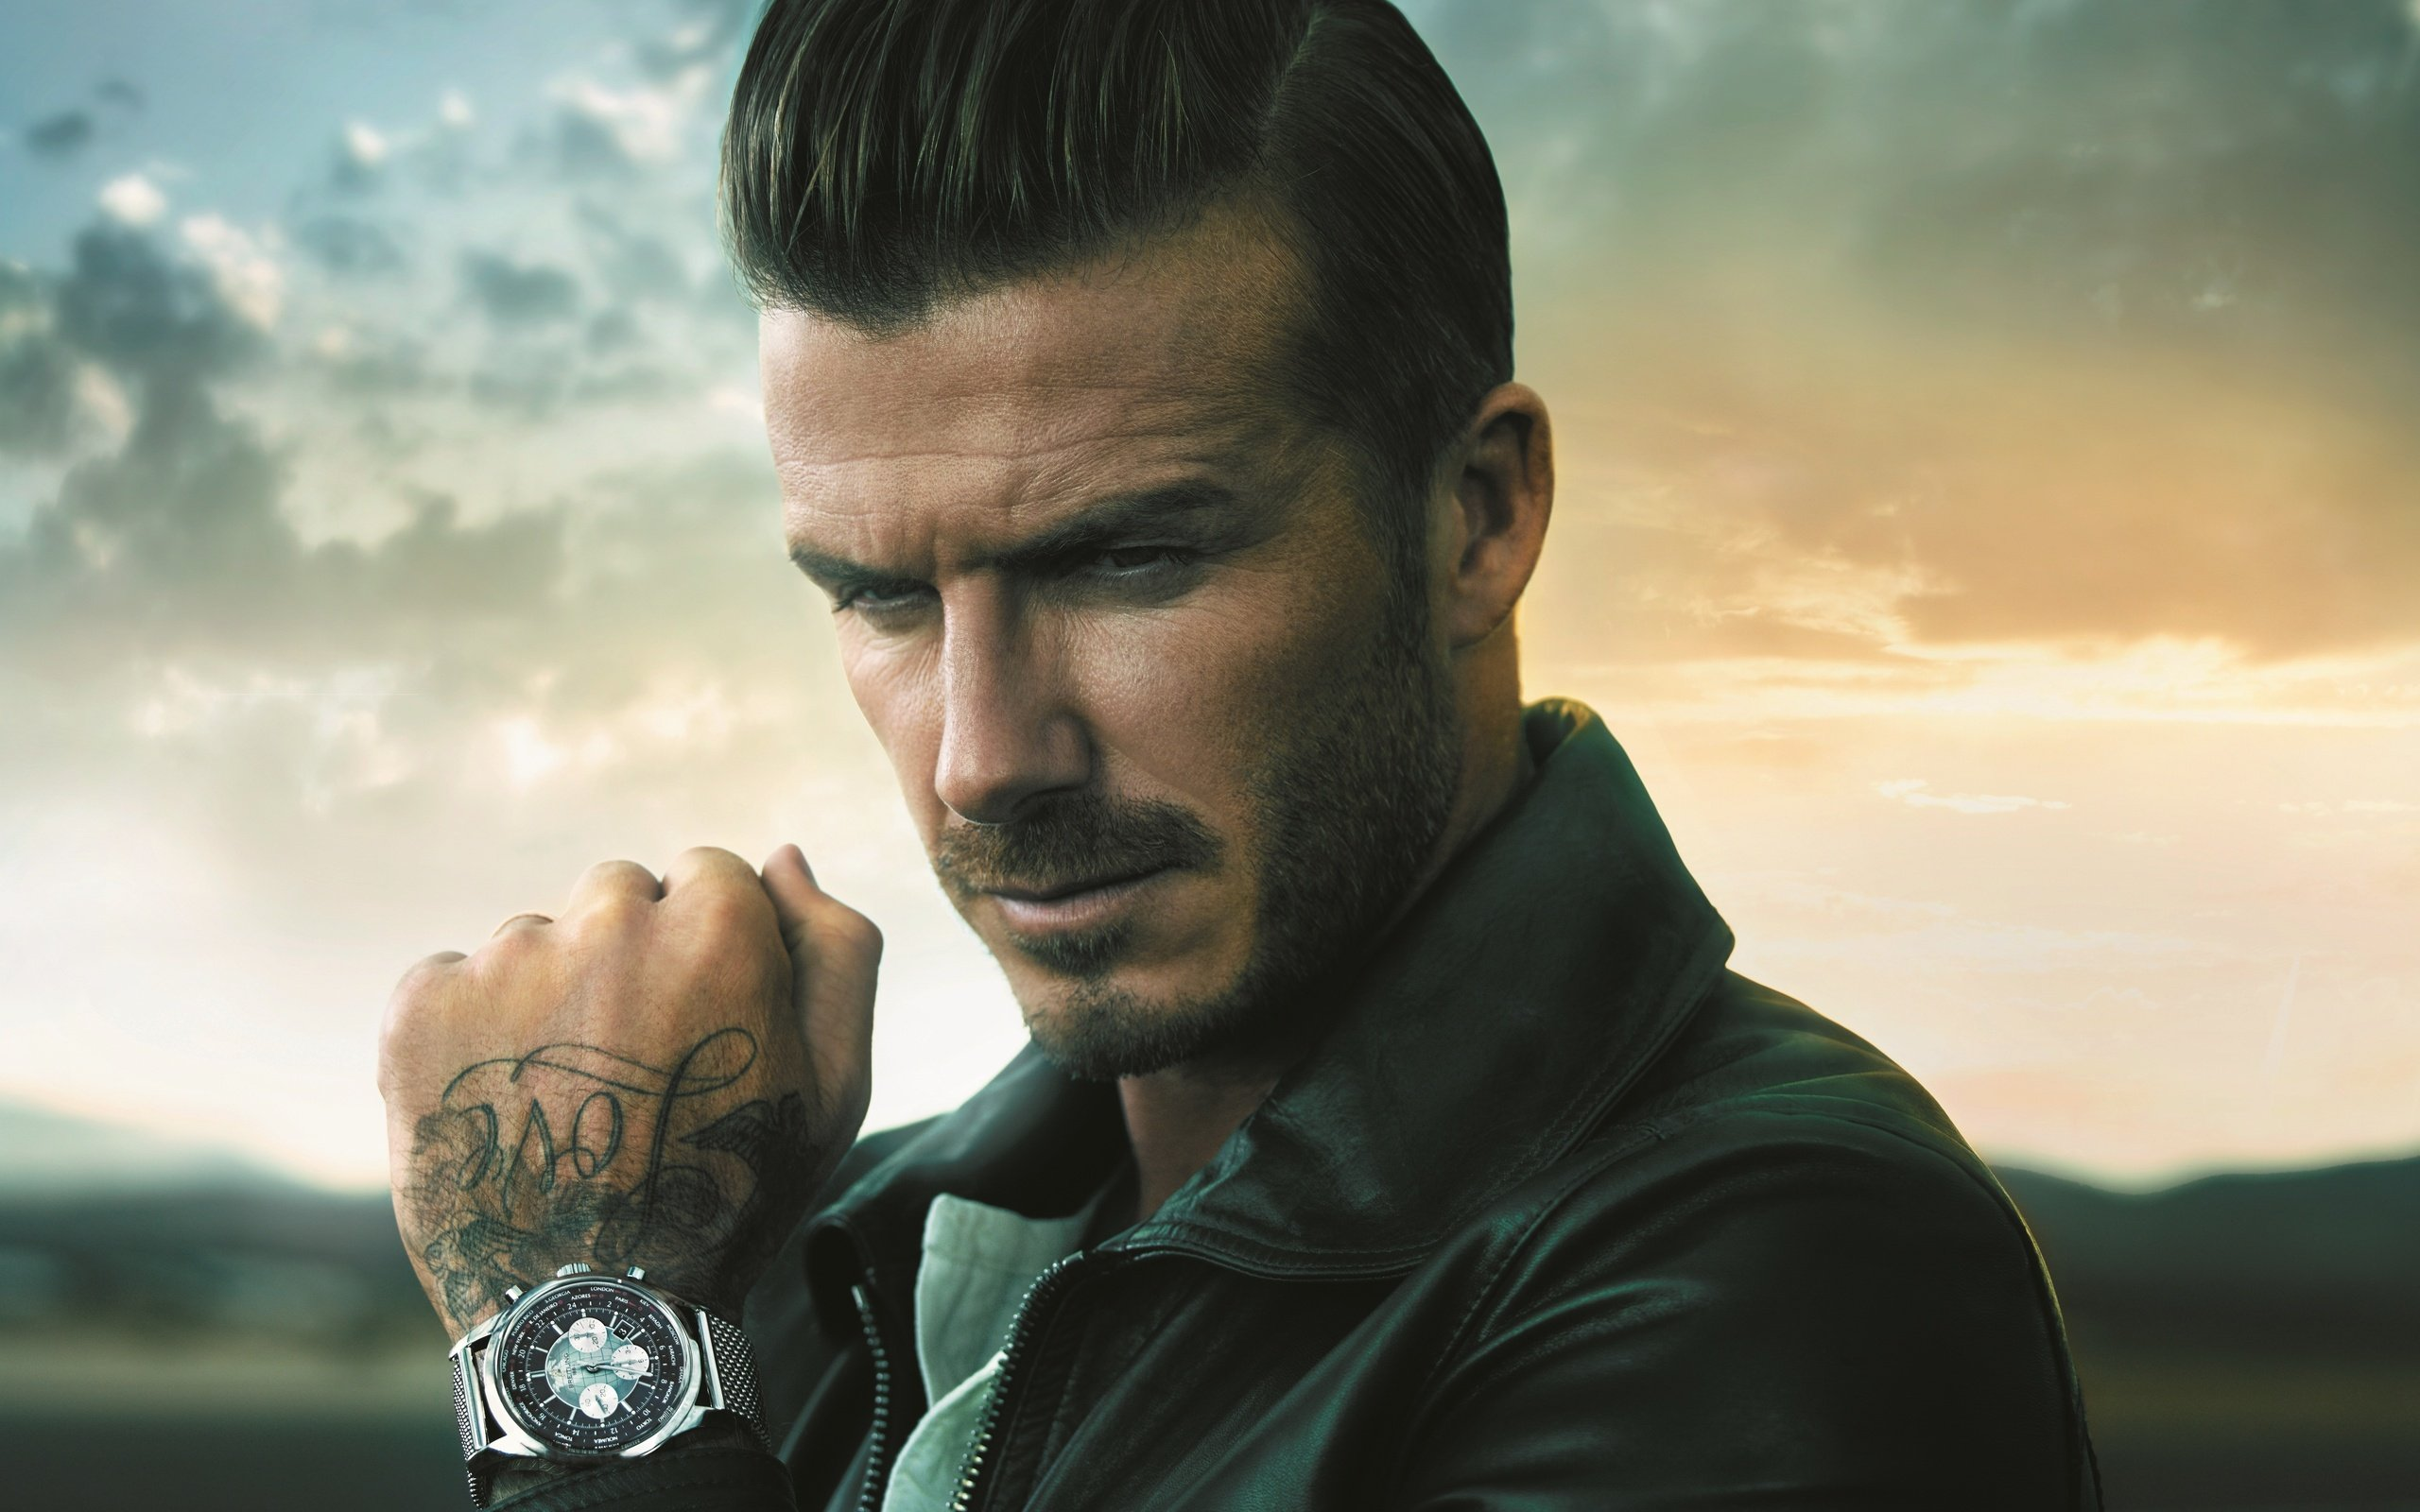 Sexy pictures of david beckham